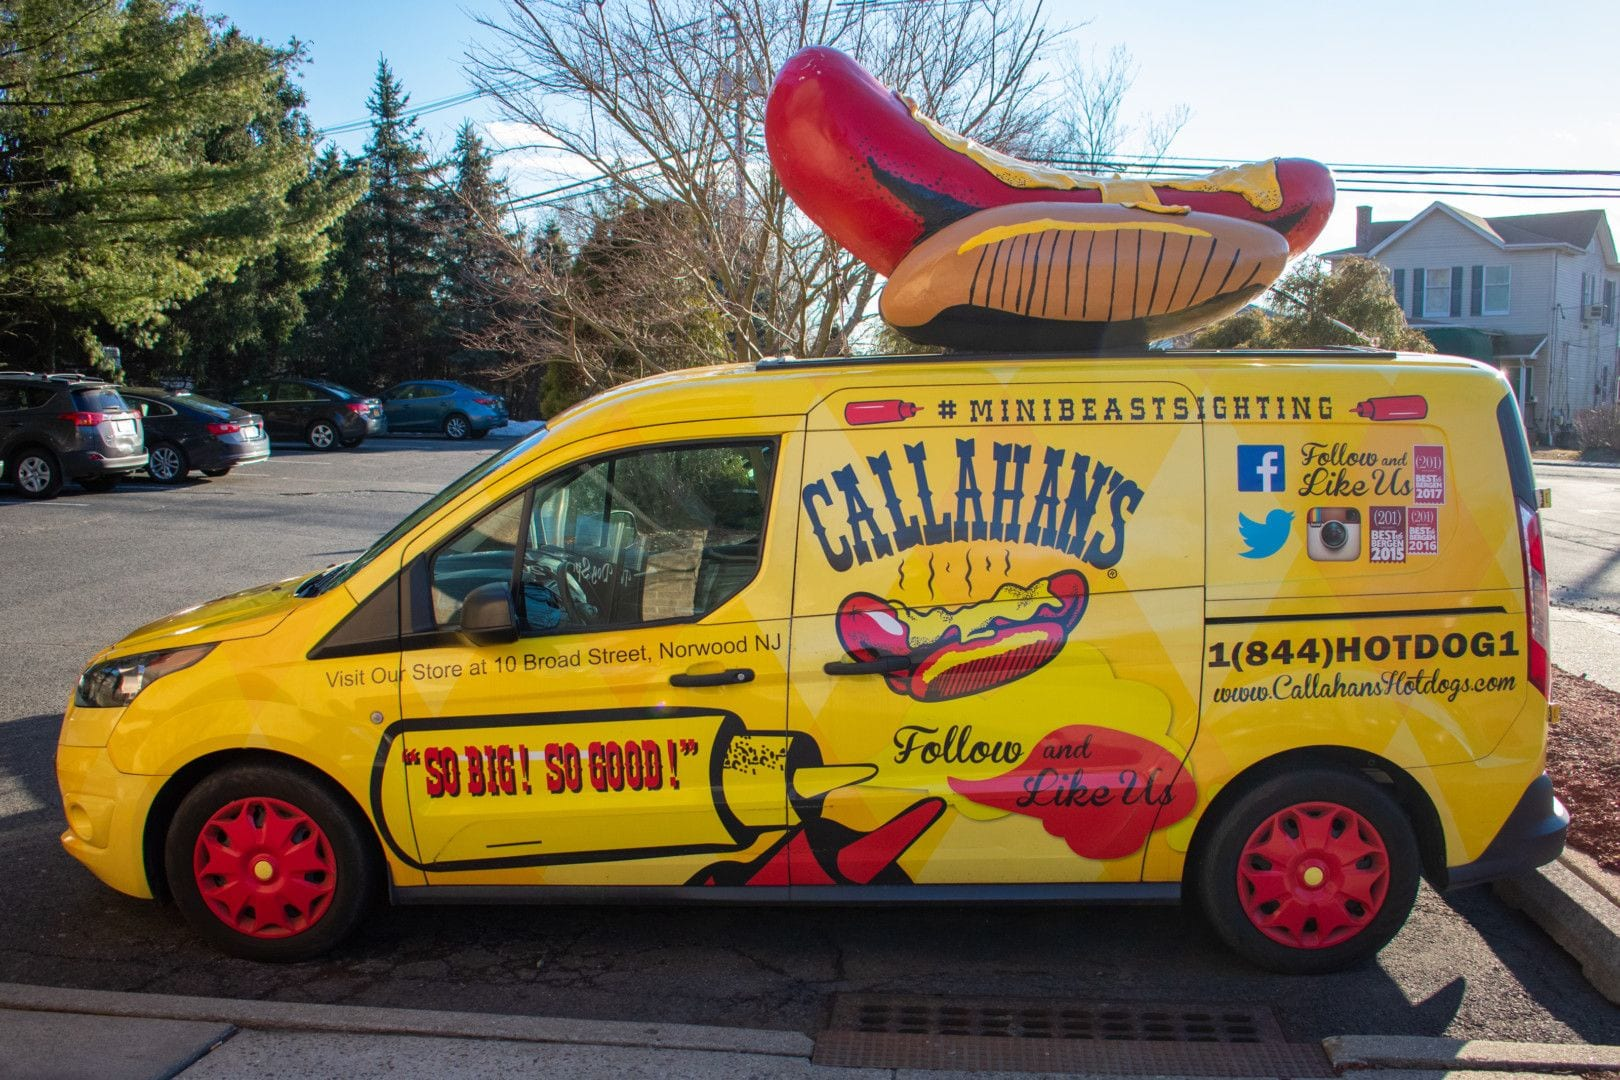 Callahan's Food Truck, one of the Best New Jersey Food Trucks